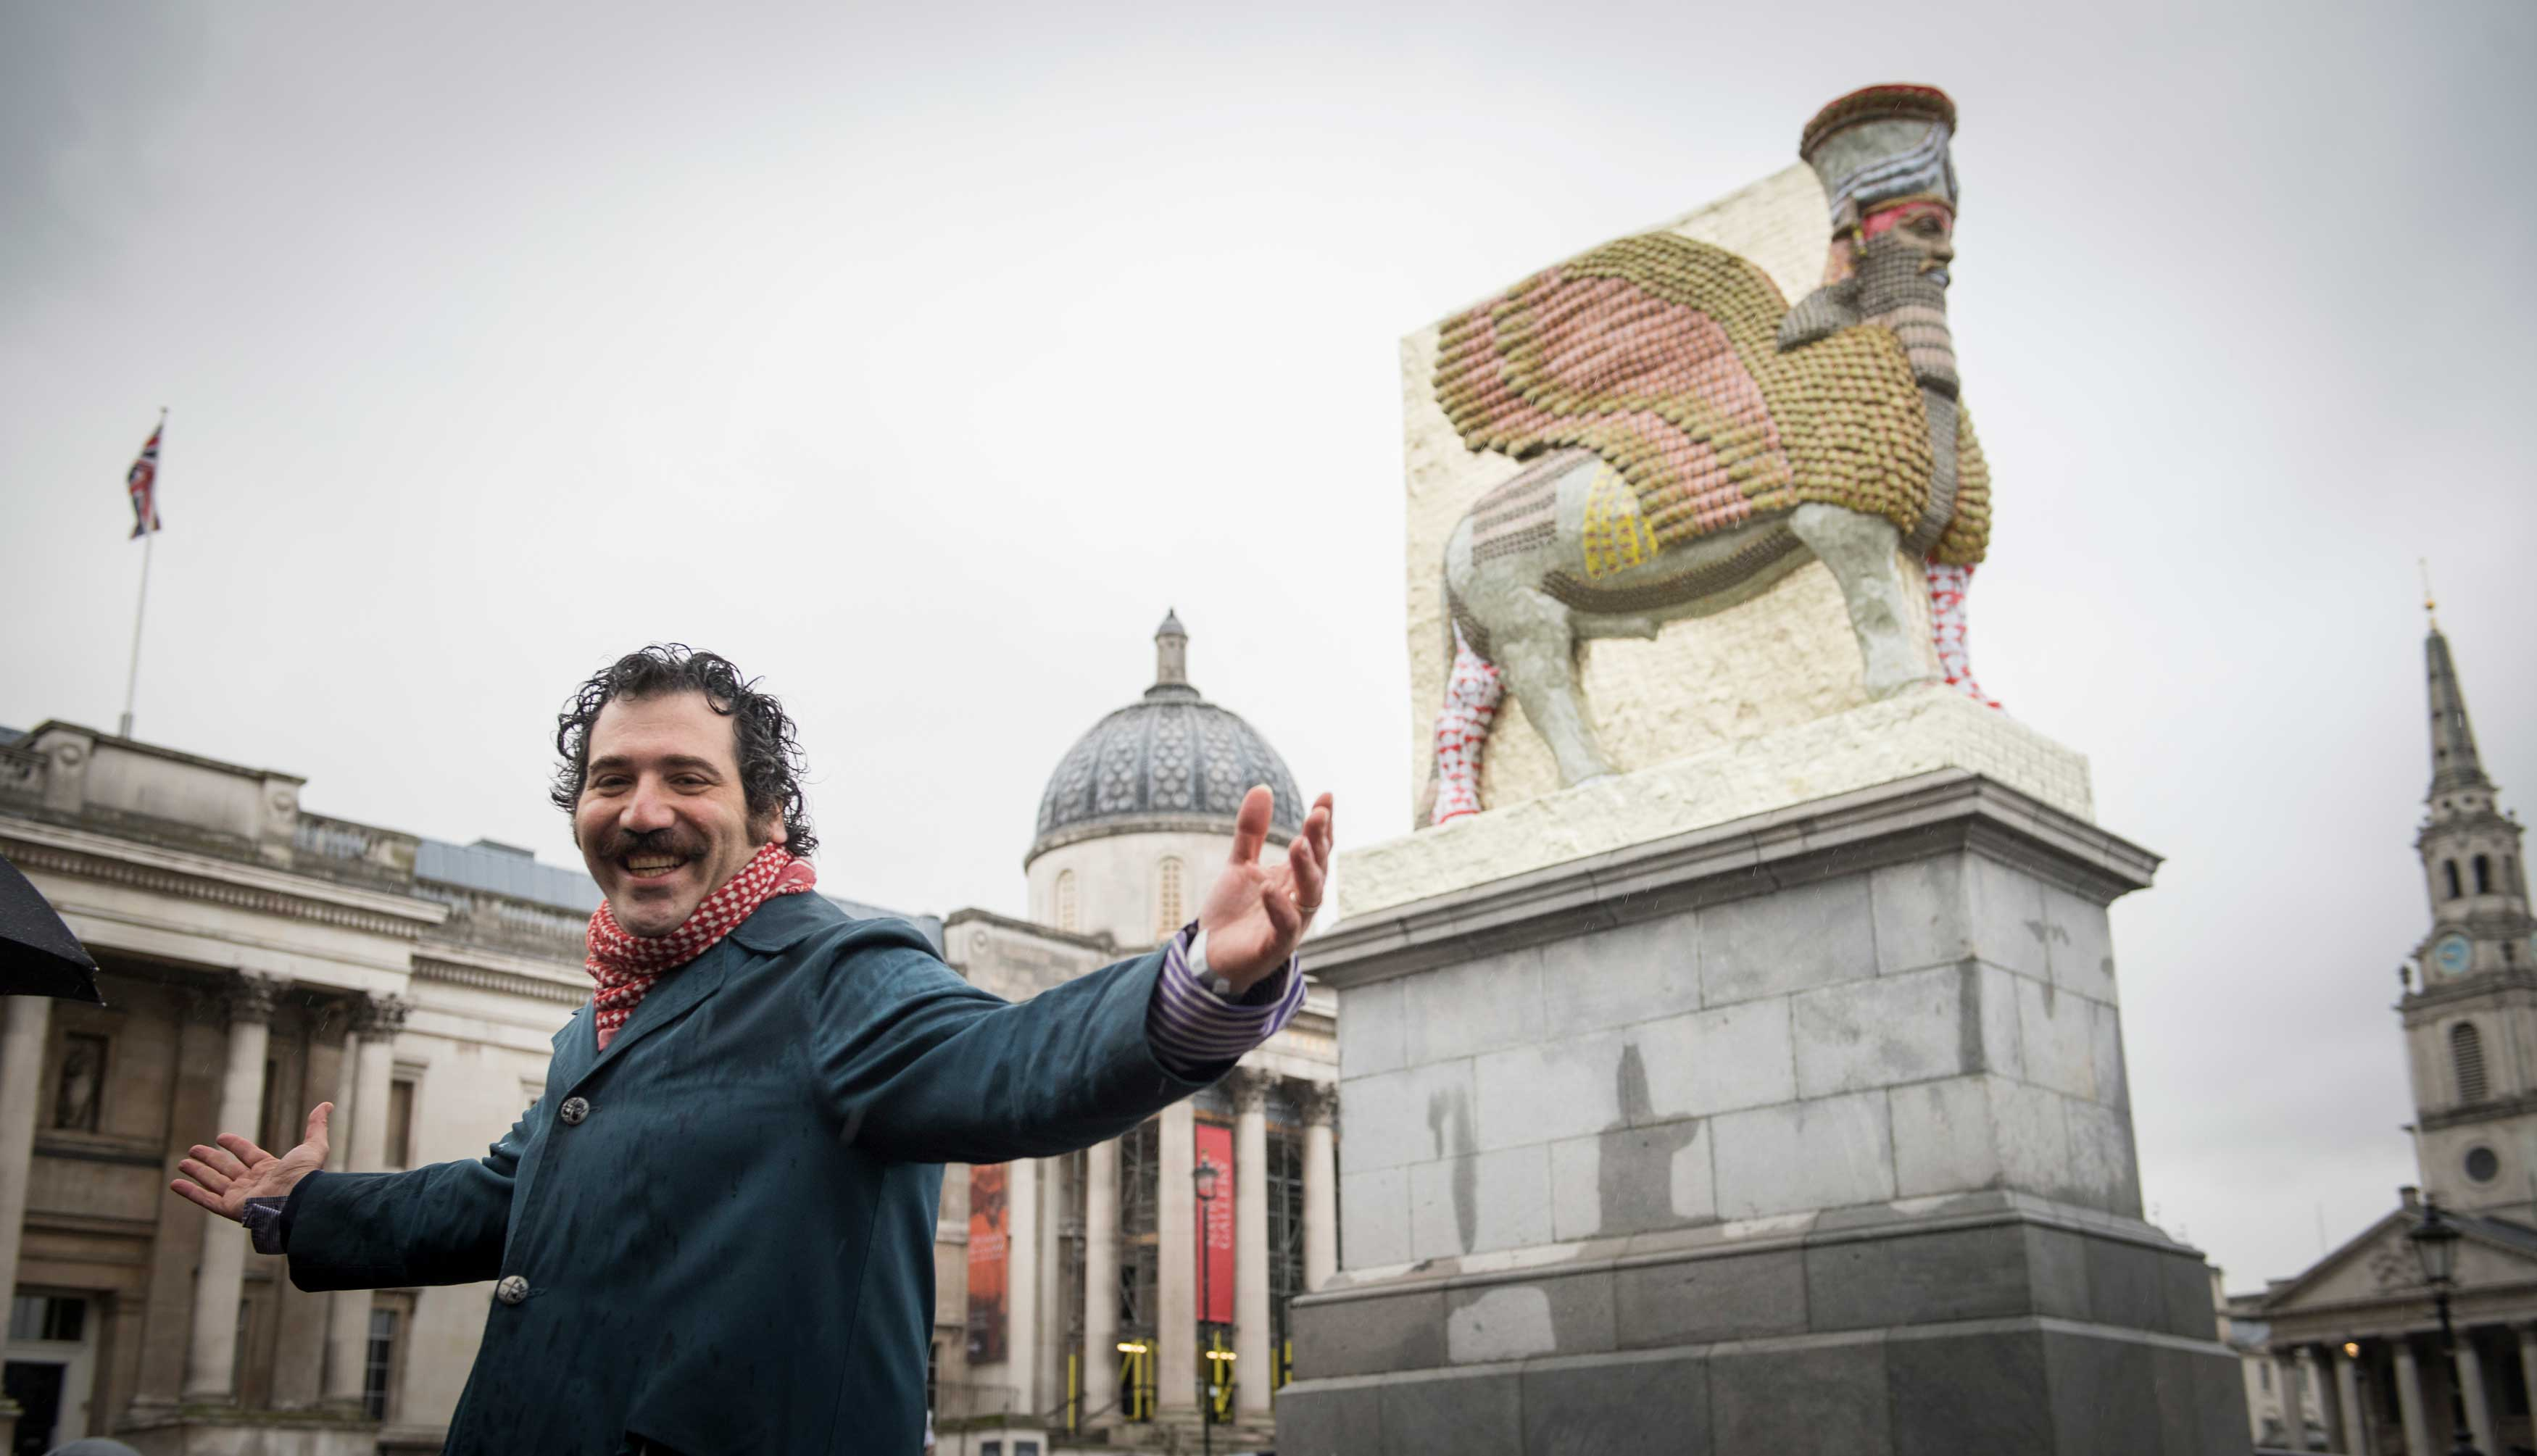 The artist unveils his fourth Plinth commission, photo by Caroline Teo